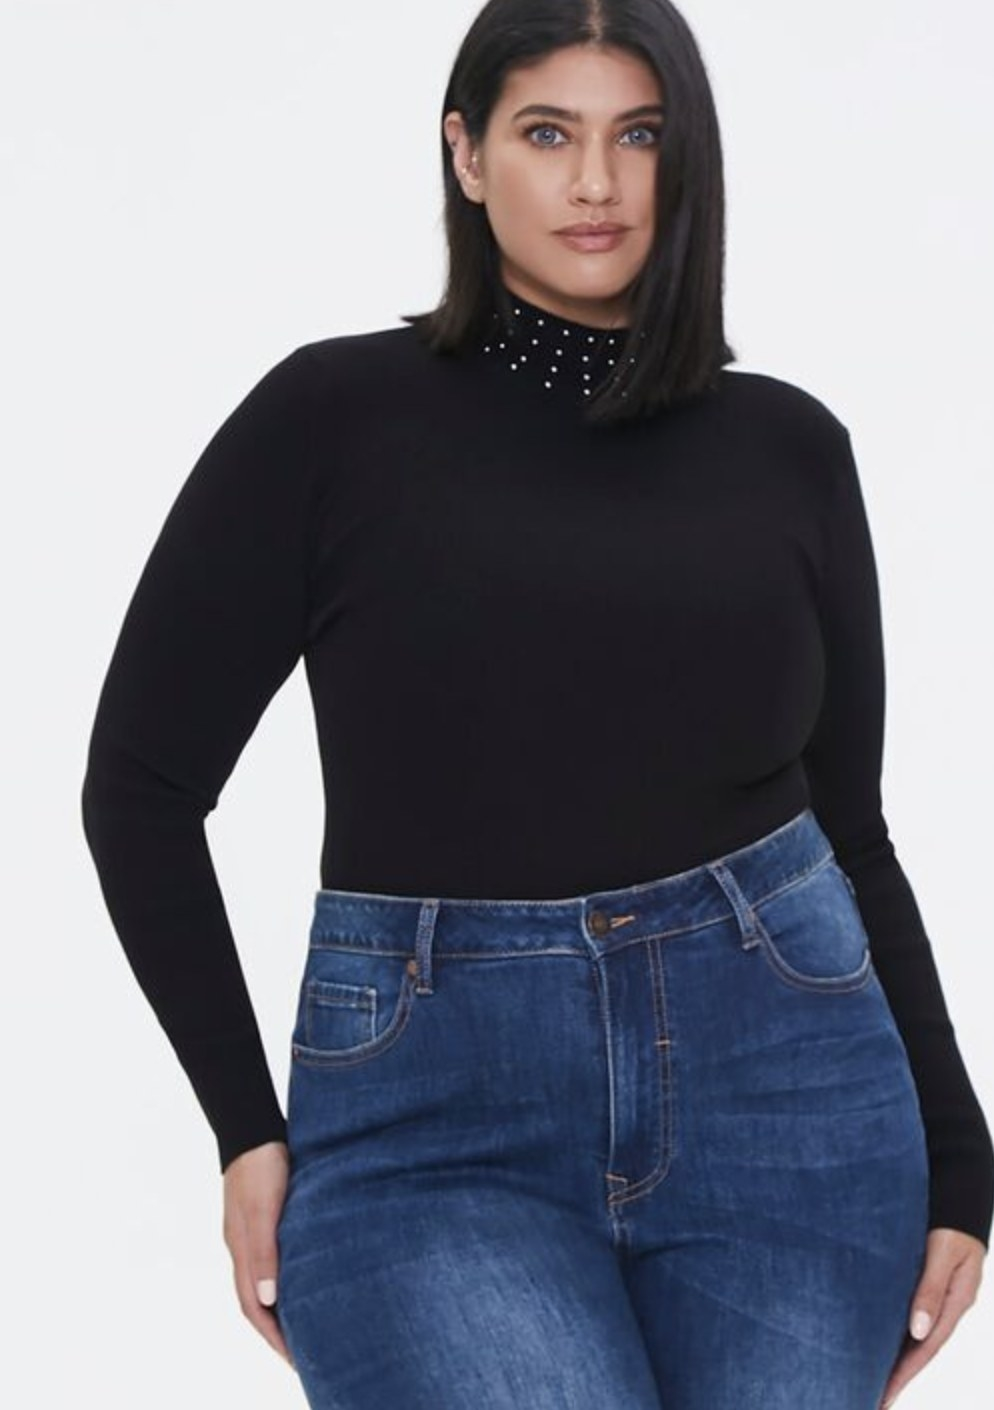 Model is wearing a black mock neck top with studded neckline and blue jeans